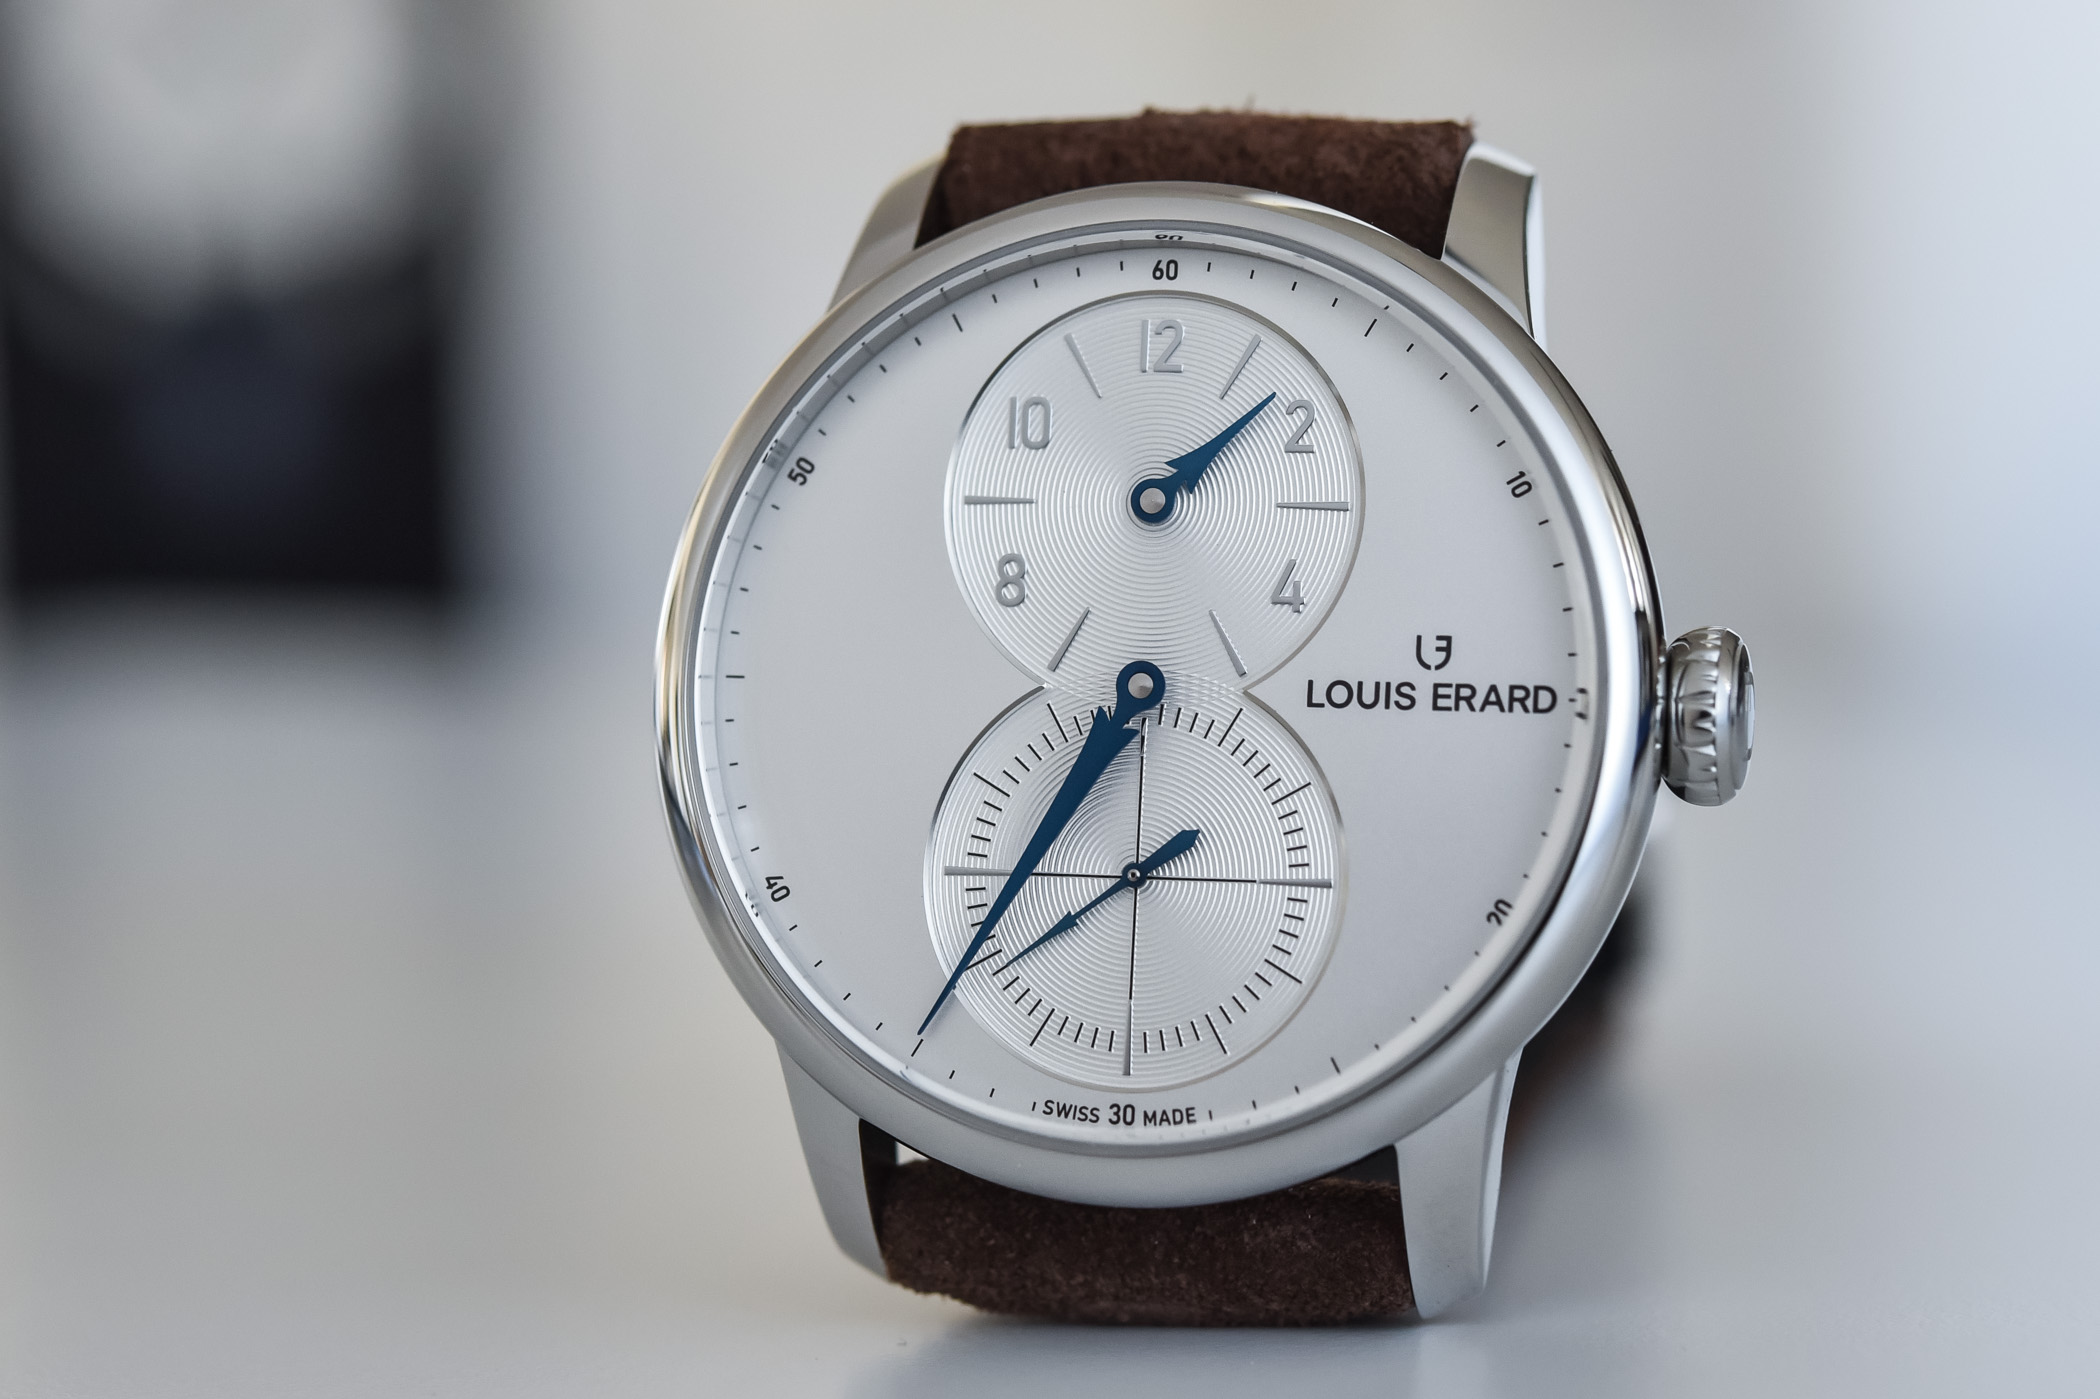 Louis Erard Excellence regulateur - review - 1